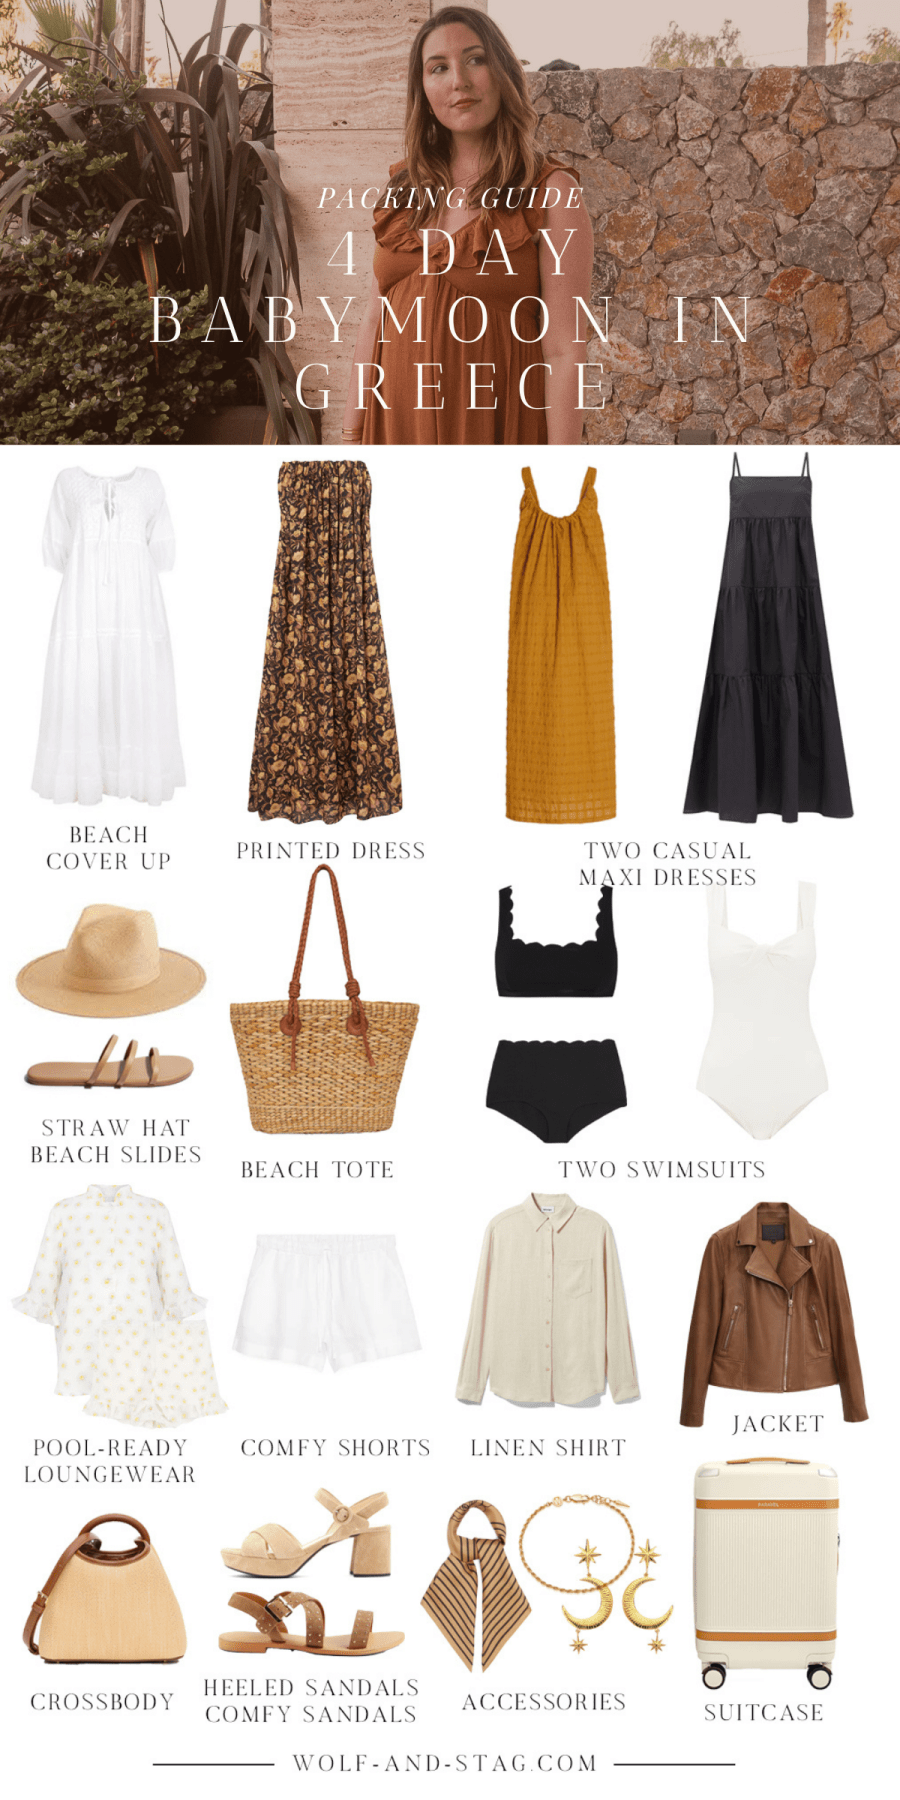 A collage of what to pack for 4 day Greece trip in the Summer, filled with hues of ochre, tan, black and white